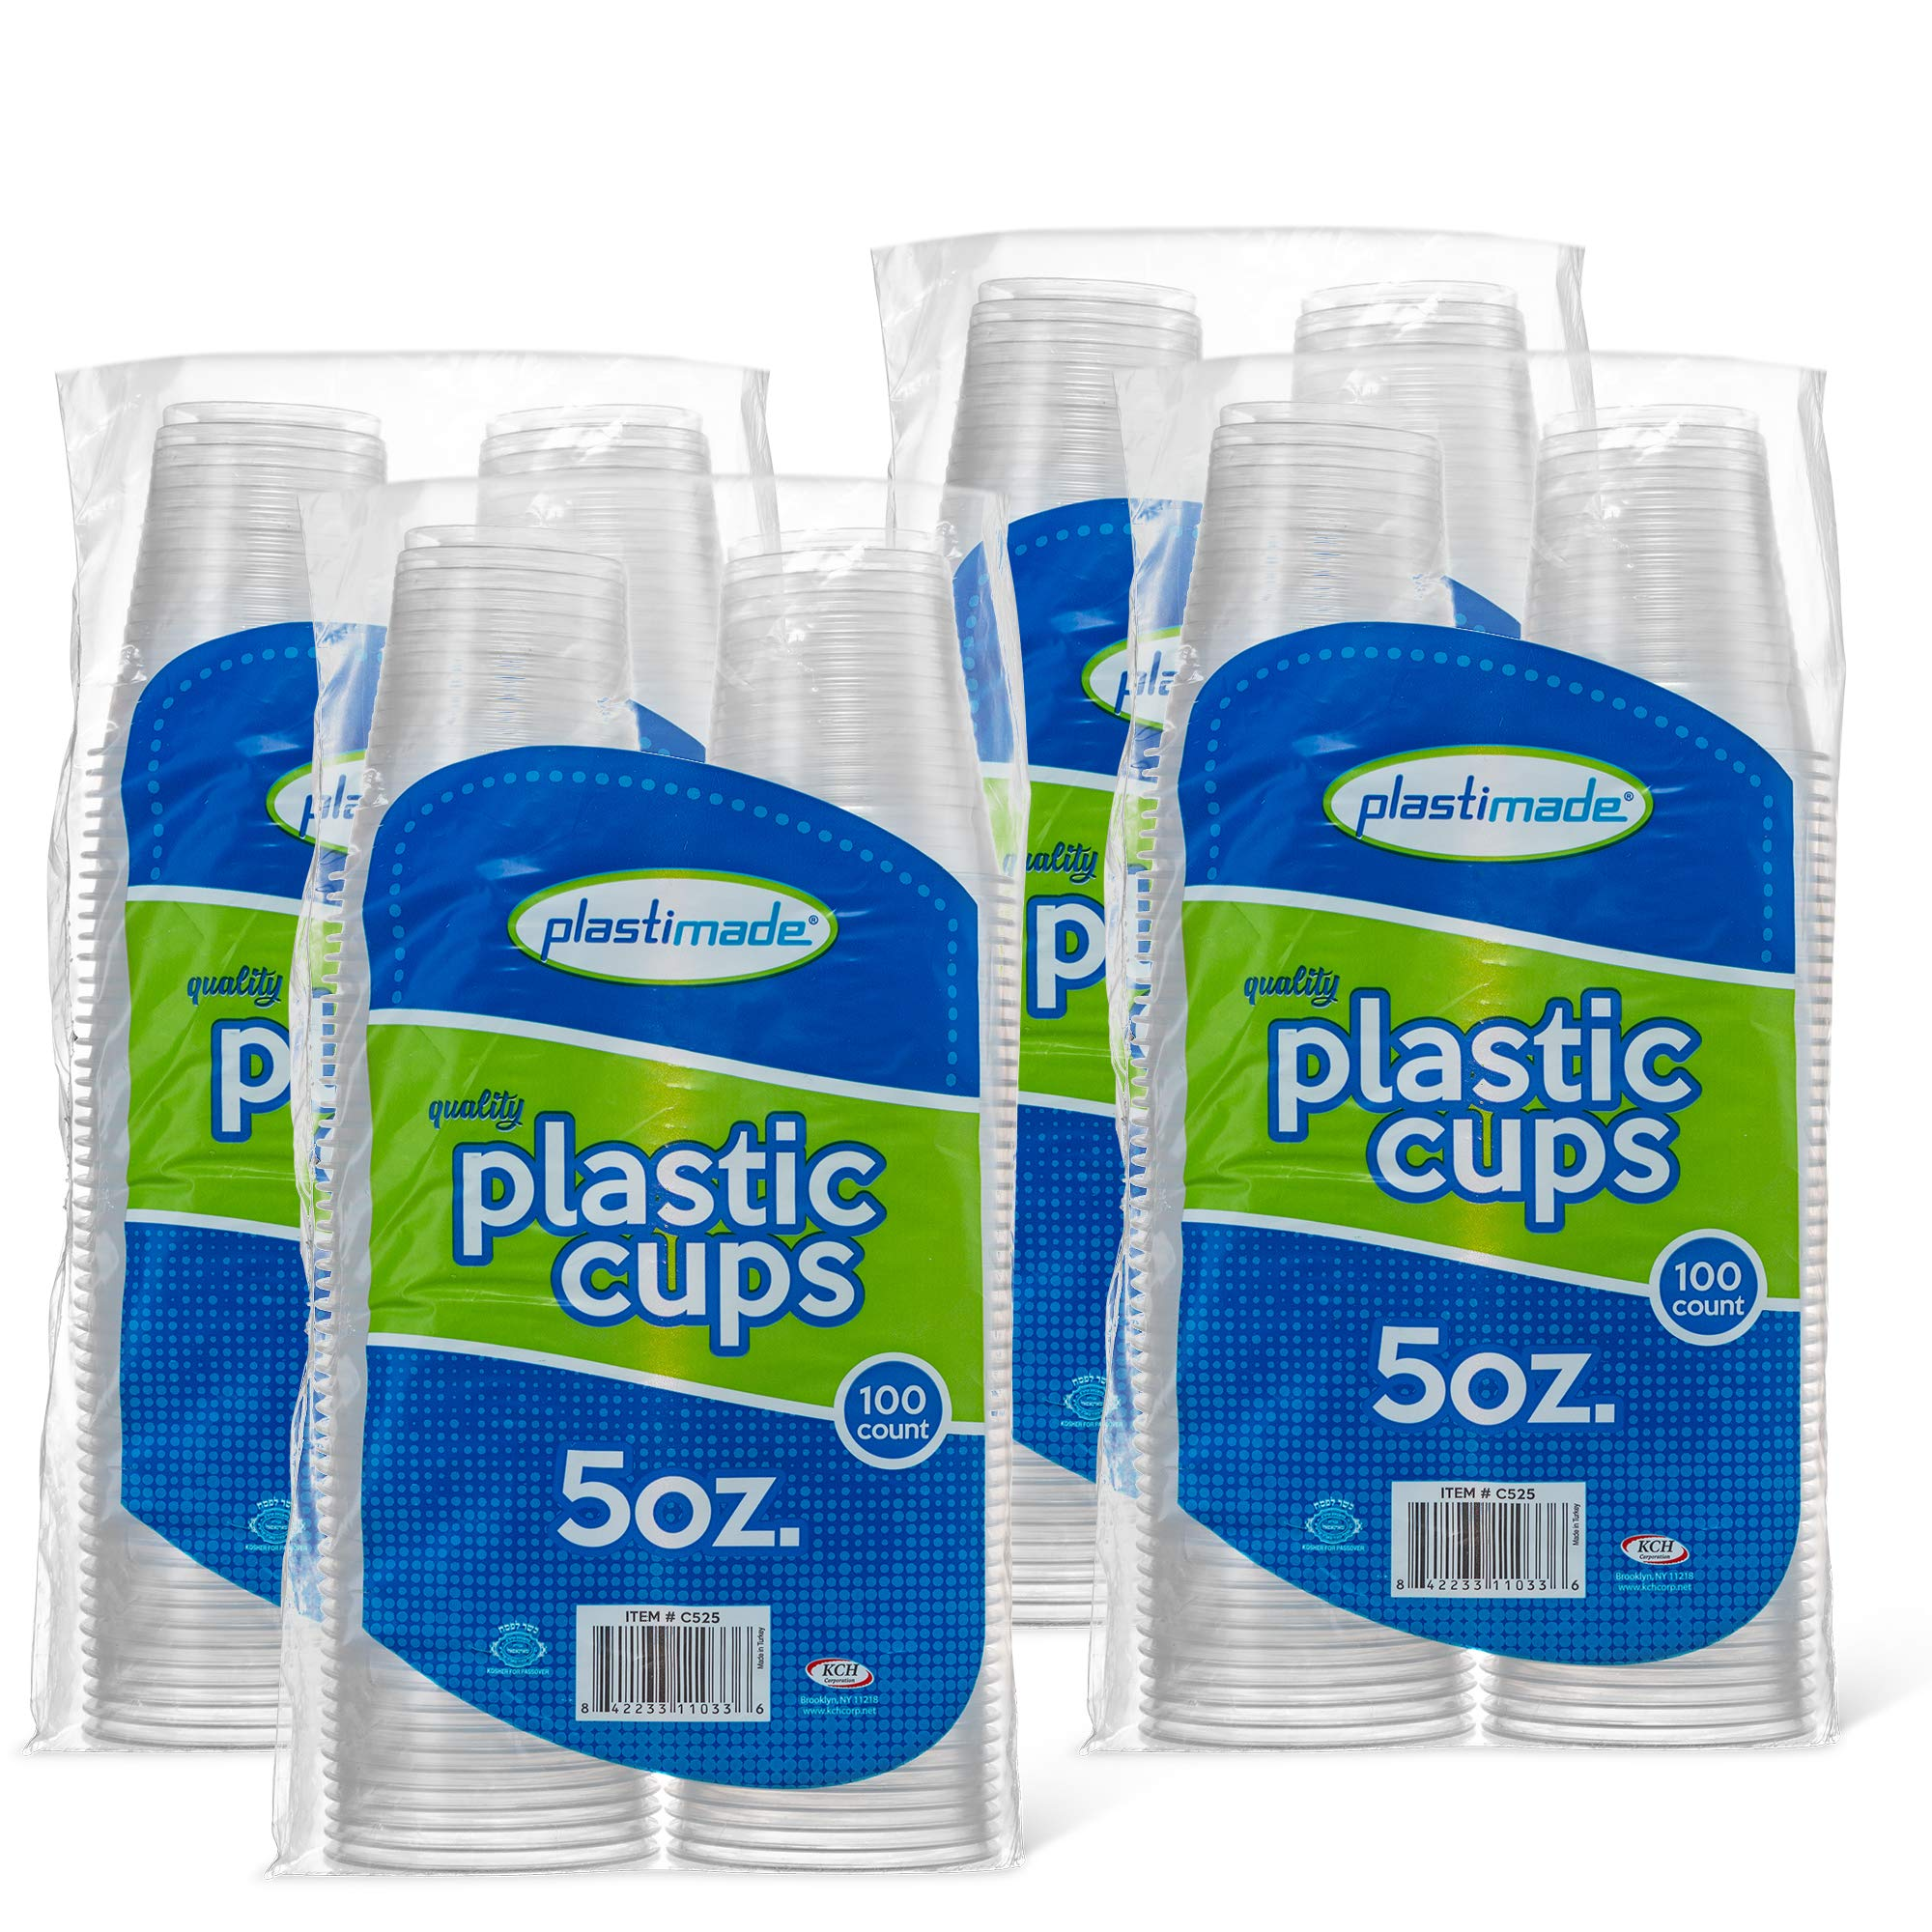 [400 Count] PlastiMade 5 Oz Clear Plastic Disposable Reusable Drinking Cups For Home, Office, Wedding, Events, Parties, Take Out, Water, Juice, Soda, Beer Cocktails (4 Packs)